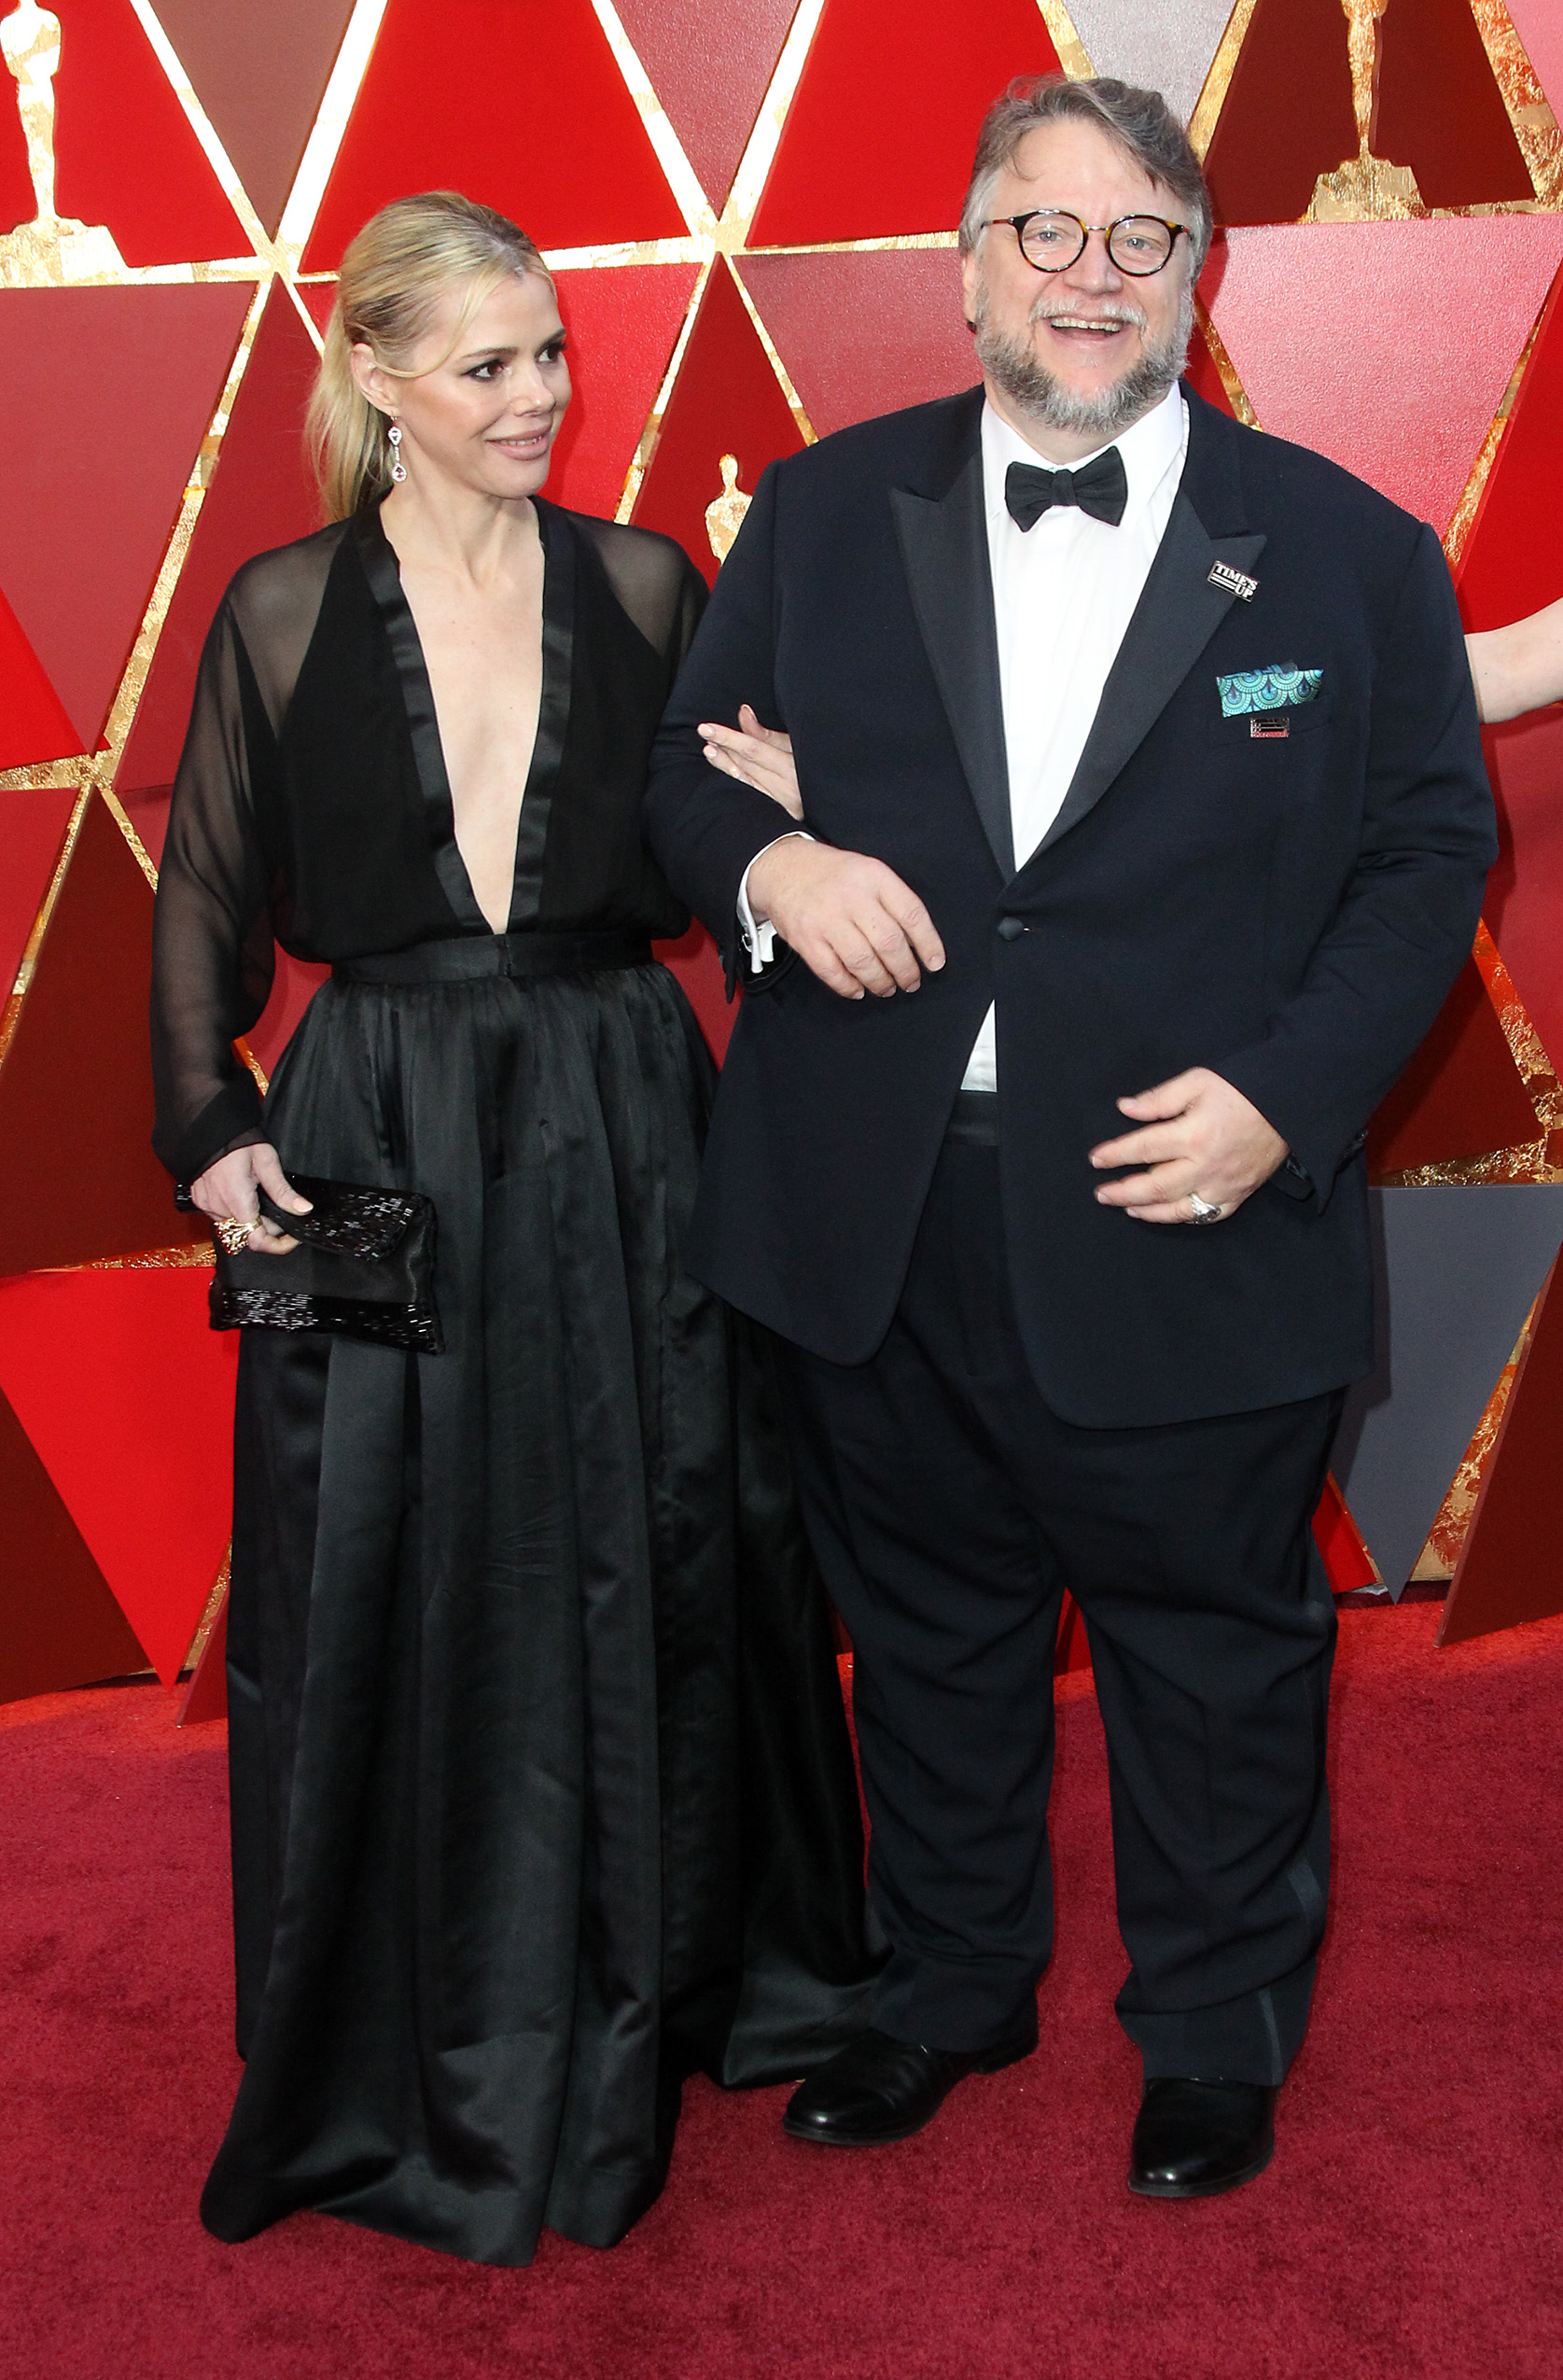 {&amp;nbsp;}Kim Morgan and{&amp;nbsp;}Guillermo del Toro arrive at the 90th Annual Academy Awards (Oscars) held at the Dolby Theater in Hollywood, California. (Image: Adriana M. Barraza/WENN.com)<p></p>